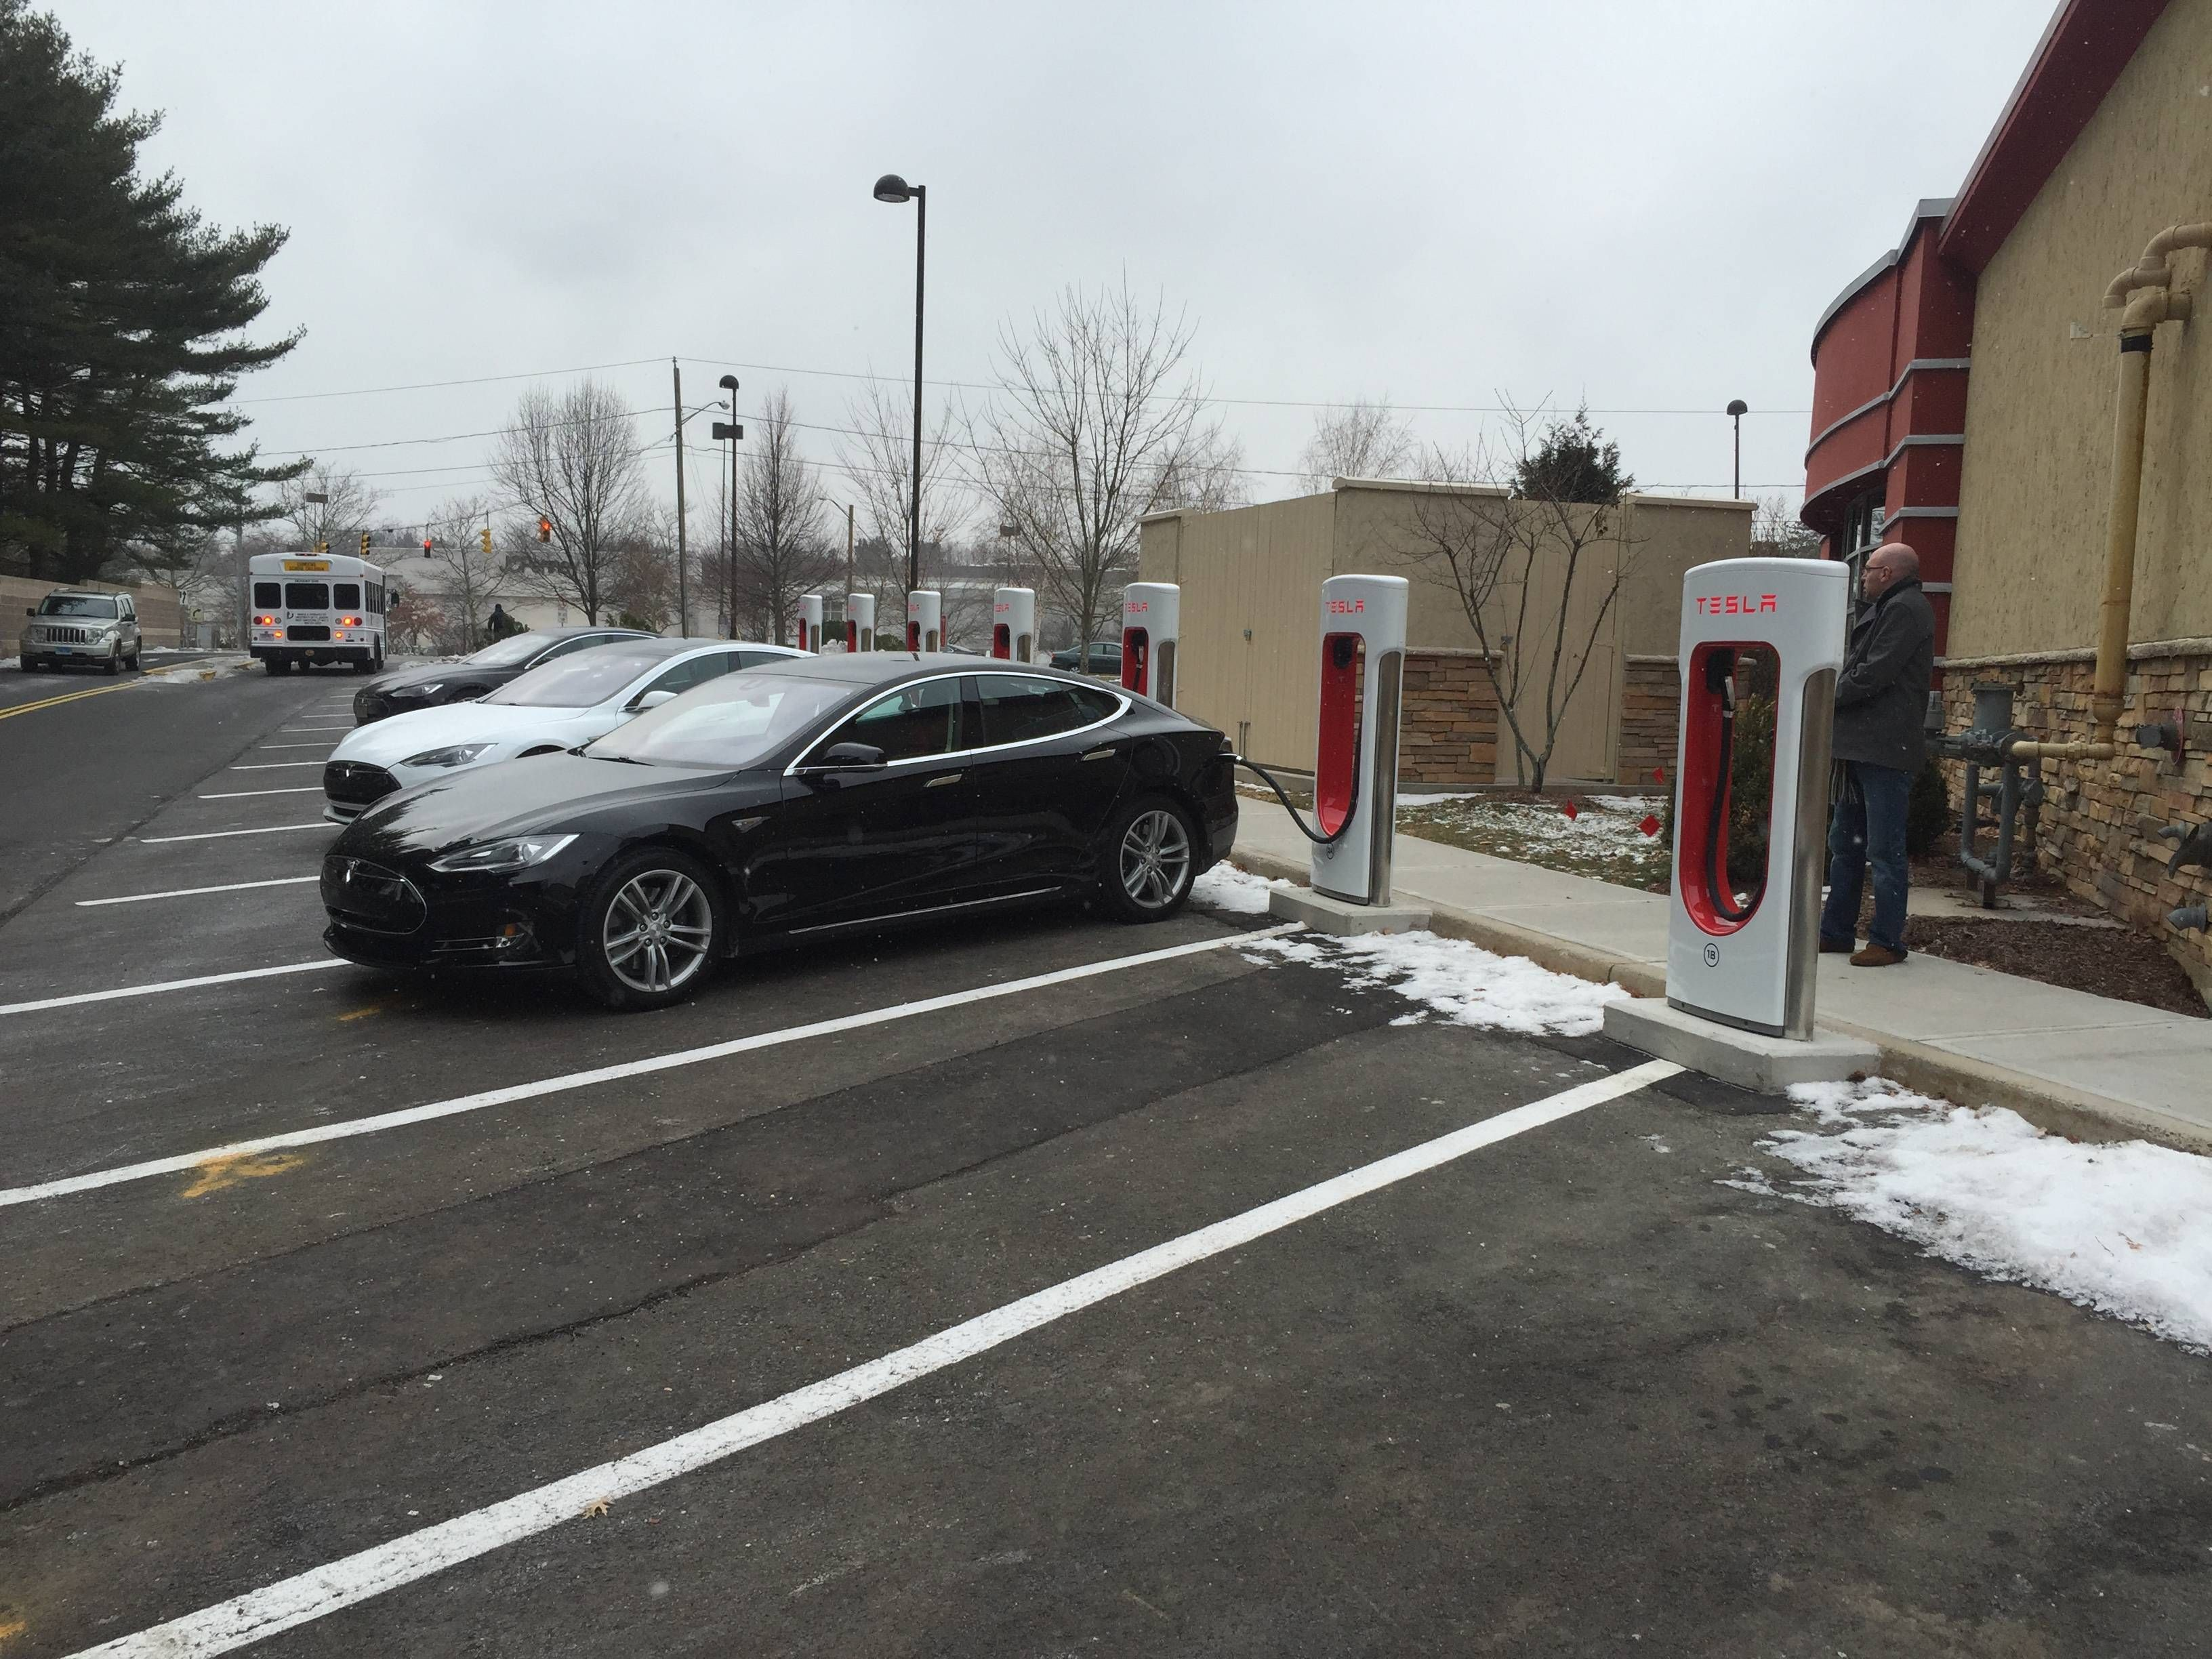 West Hartford Ct Imgur For More Check Out Www Evannex Com West Hartford Hartford Supercharger